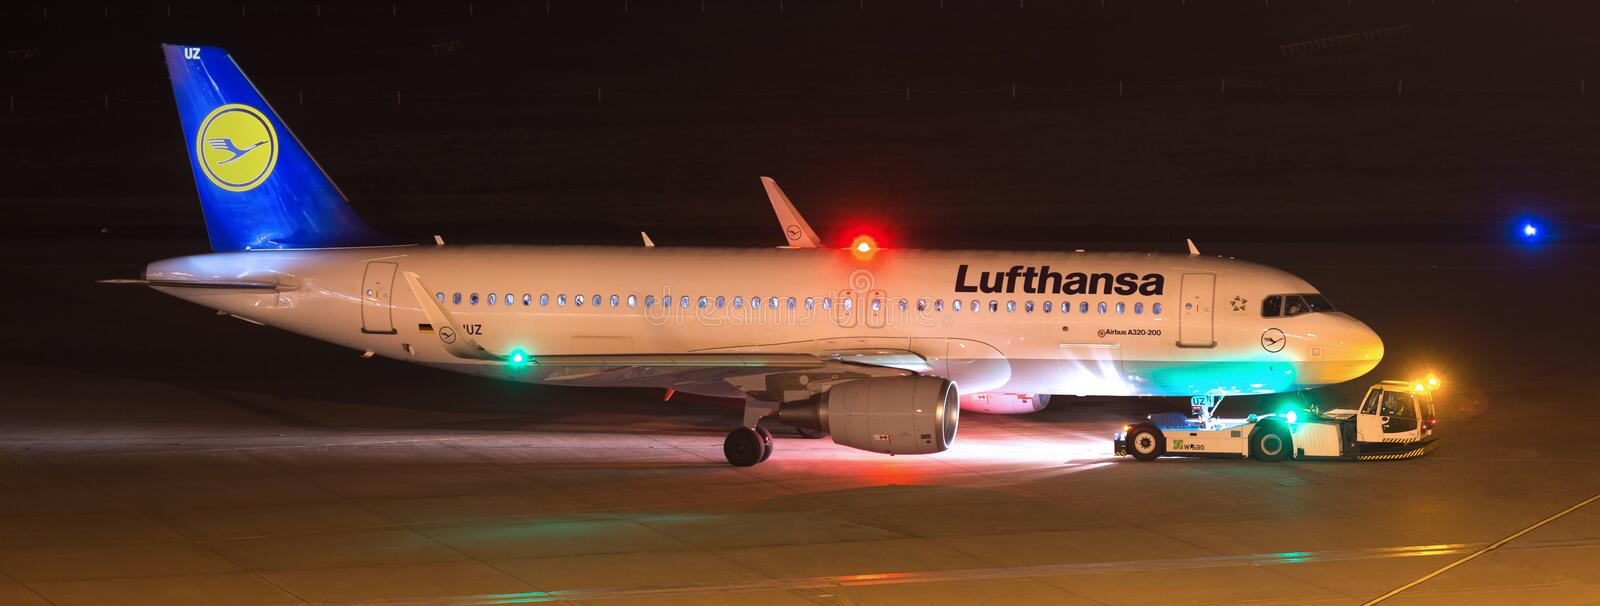 Lufthansa airplane at airport cologne bonn germany at night. Cologne, North Rhine-Westphalia/germany - 02 01 19: lufthansa airplane at airport cologne bonn royalty free stock photography